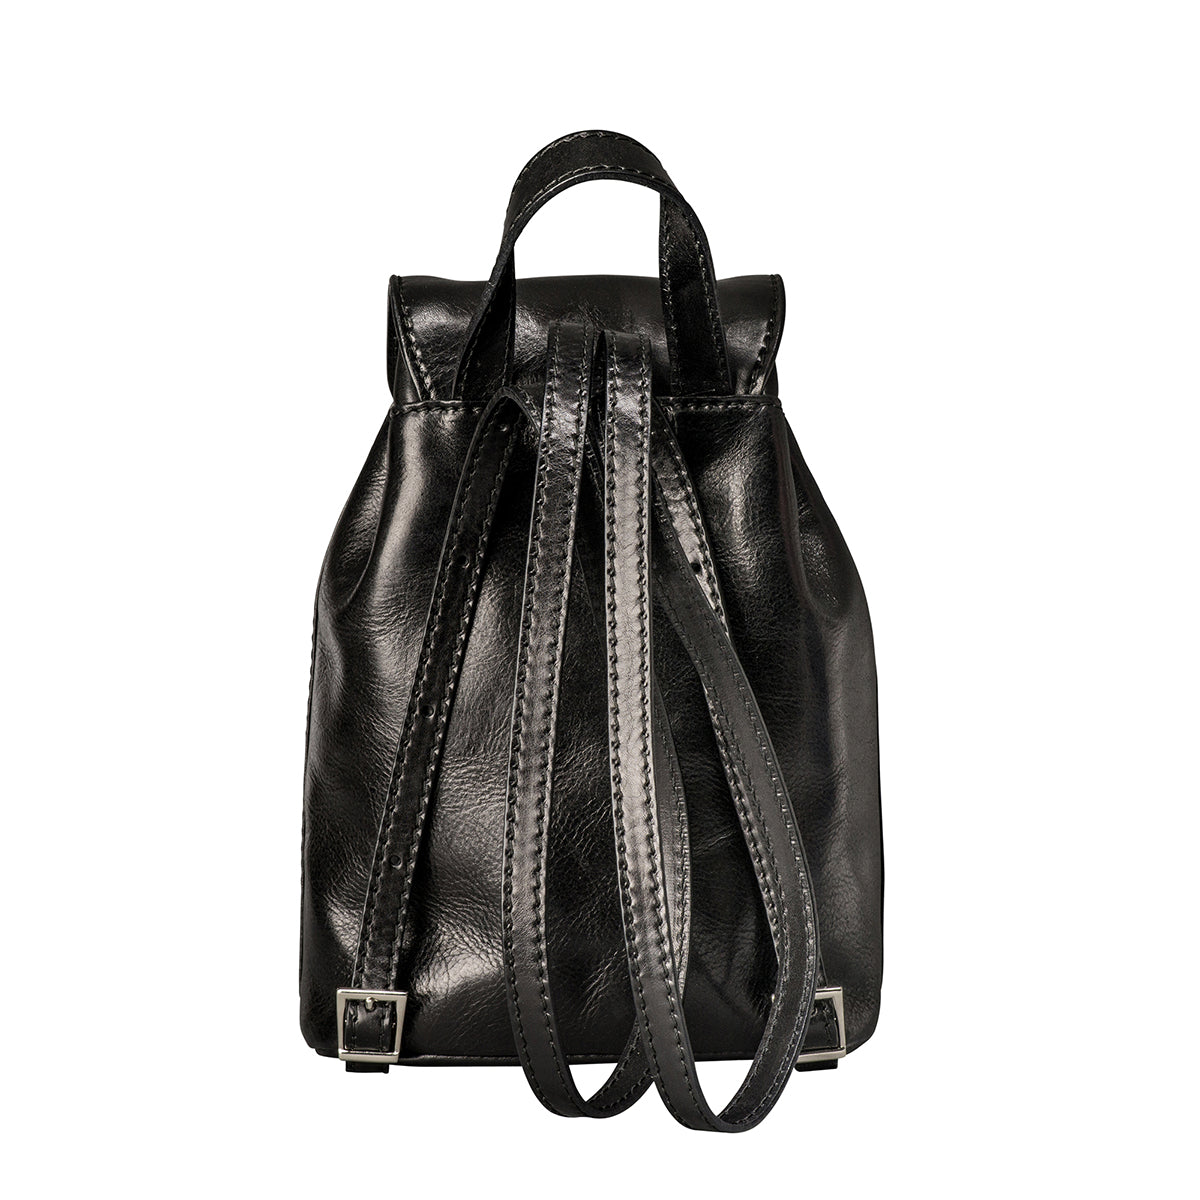 Image 4 of the 'Popolo' Compact Black Veg-Tanned Leather Shoulder Bag